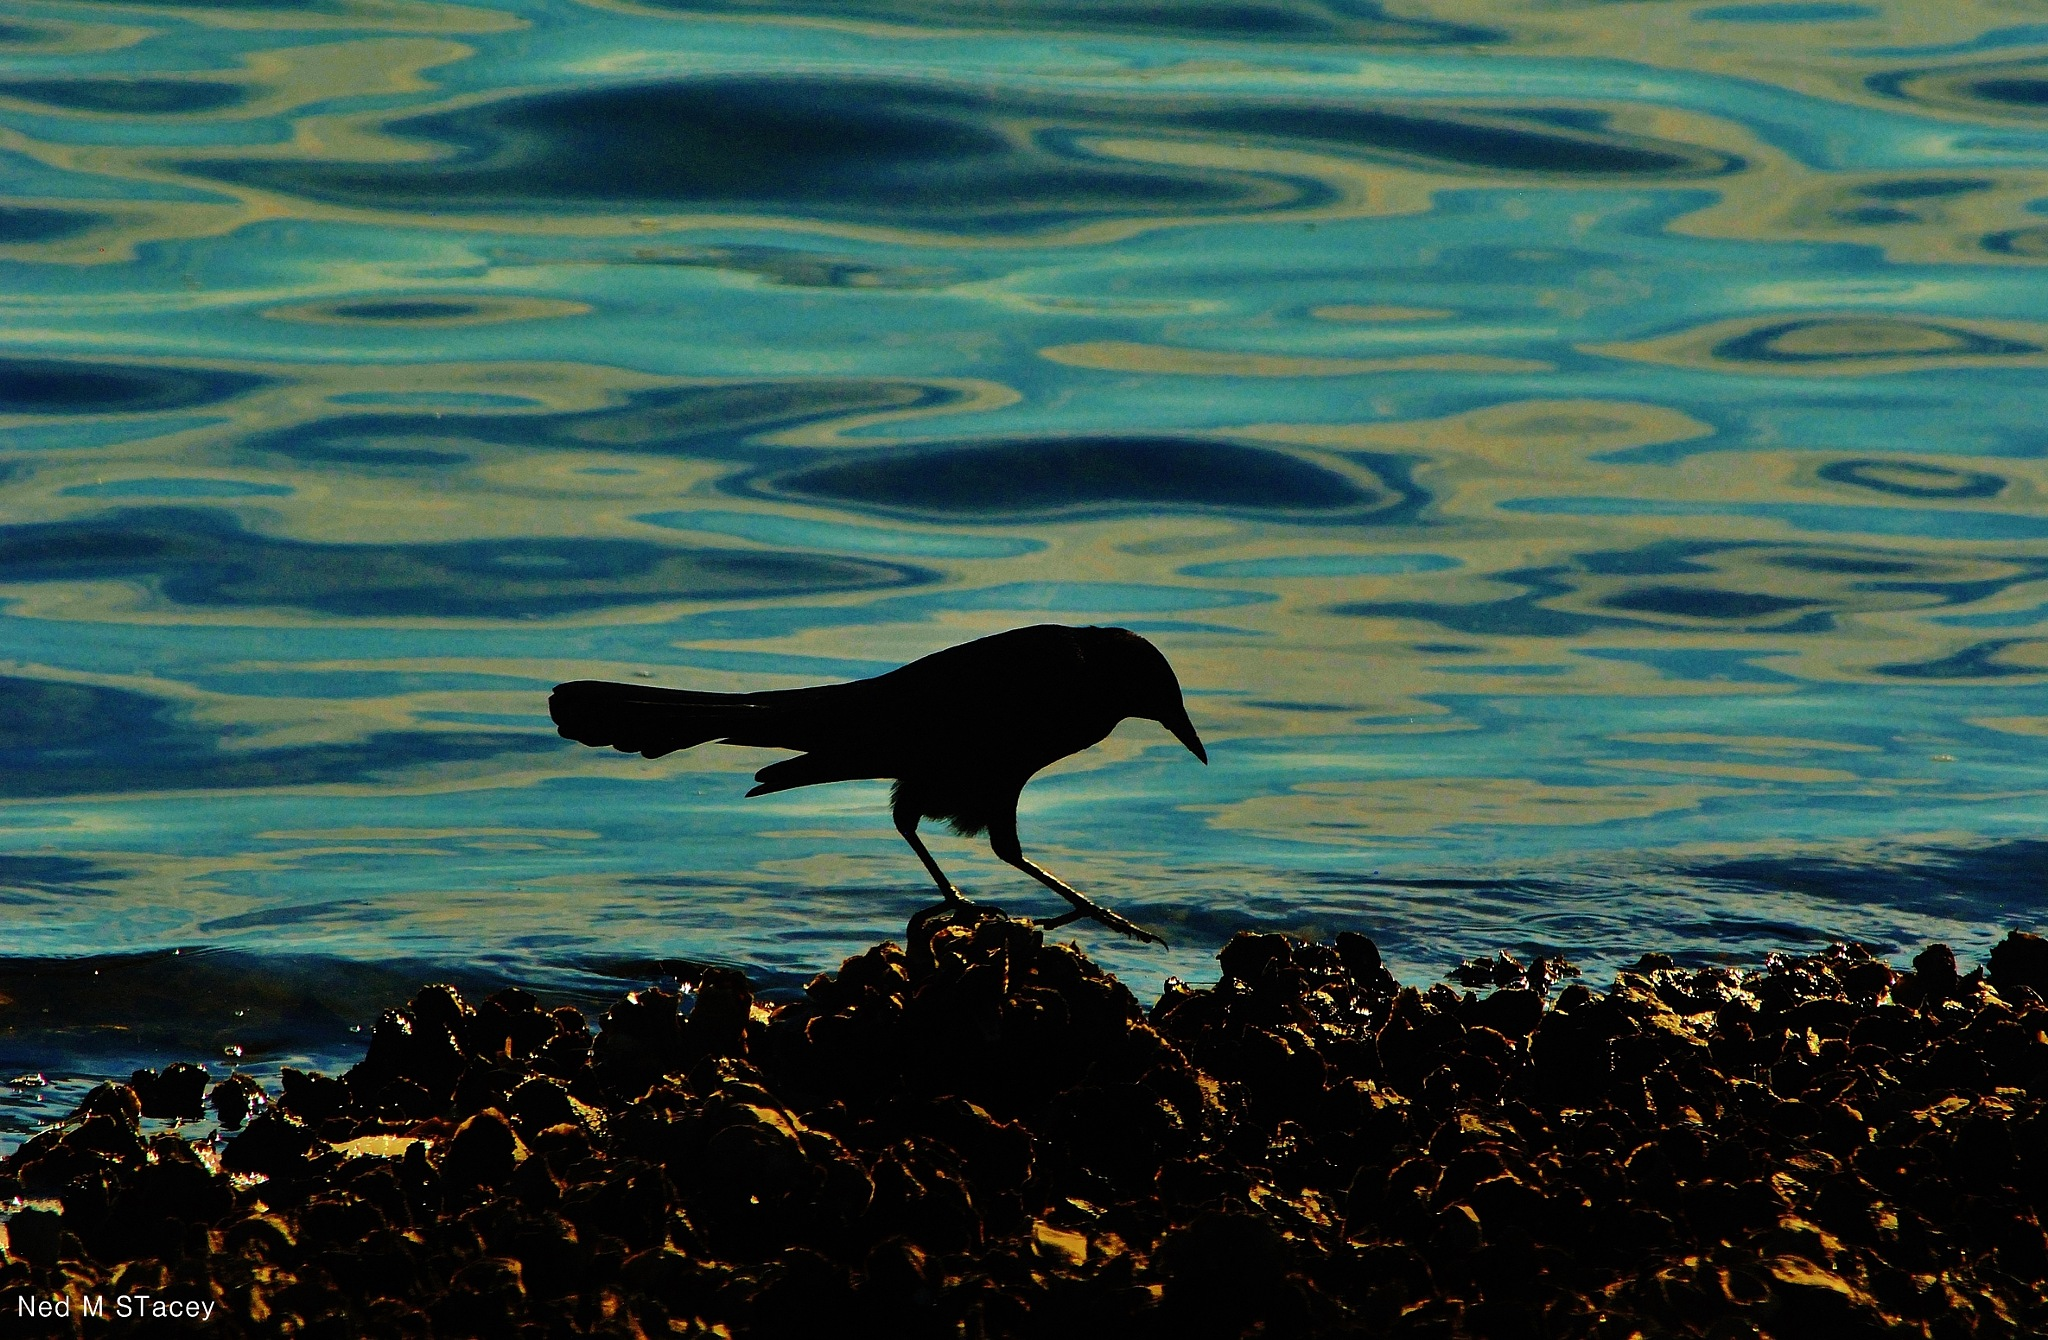 Grackle by NED